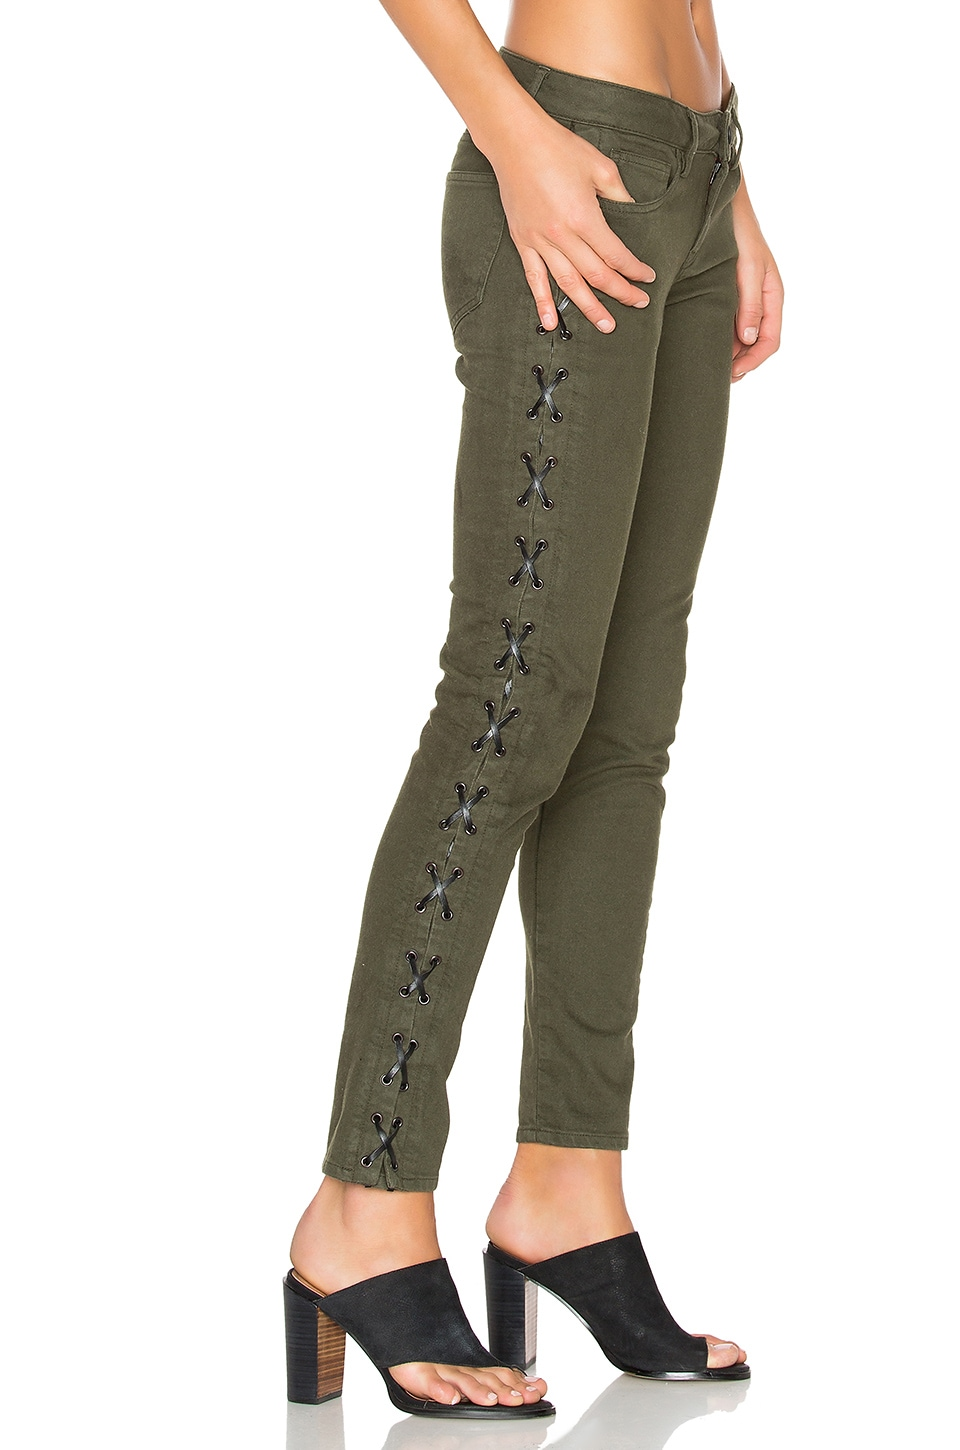 Lace Up Skinny